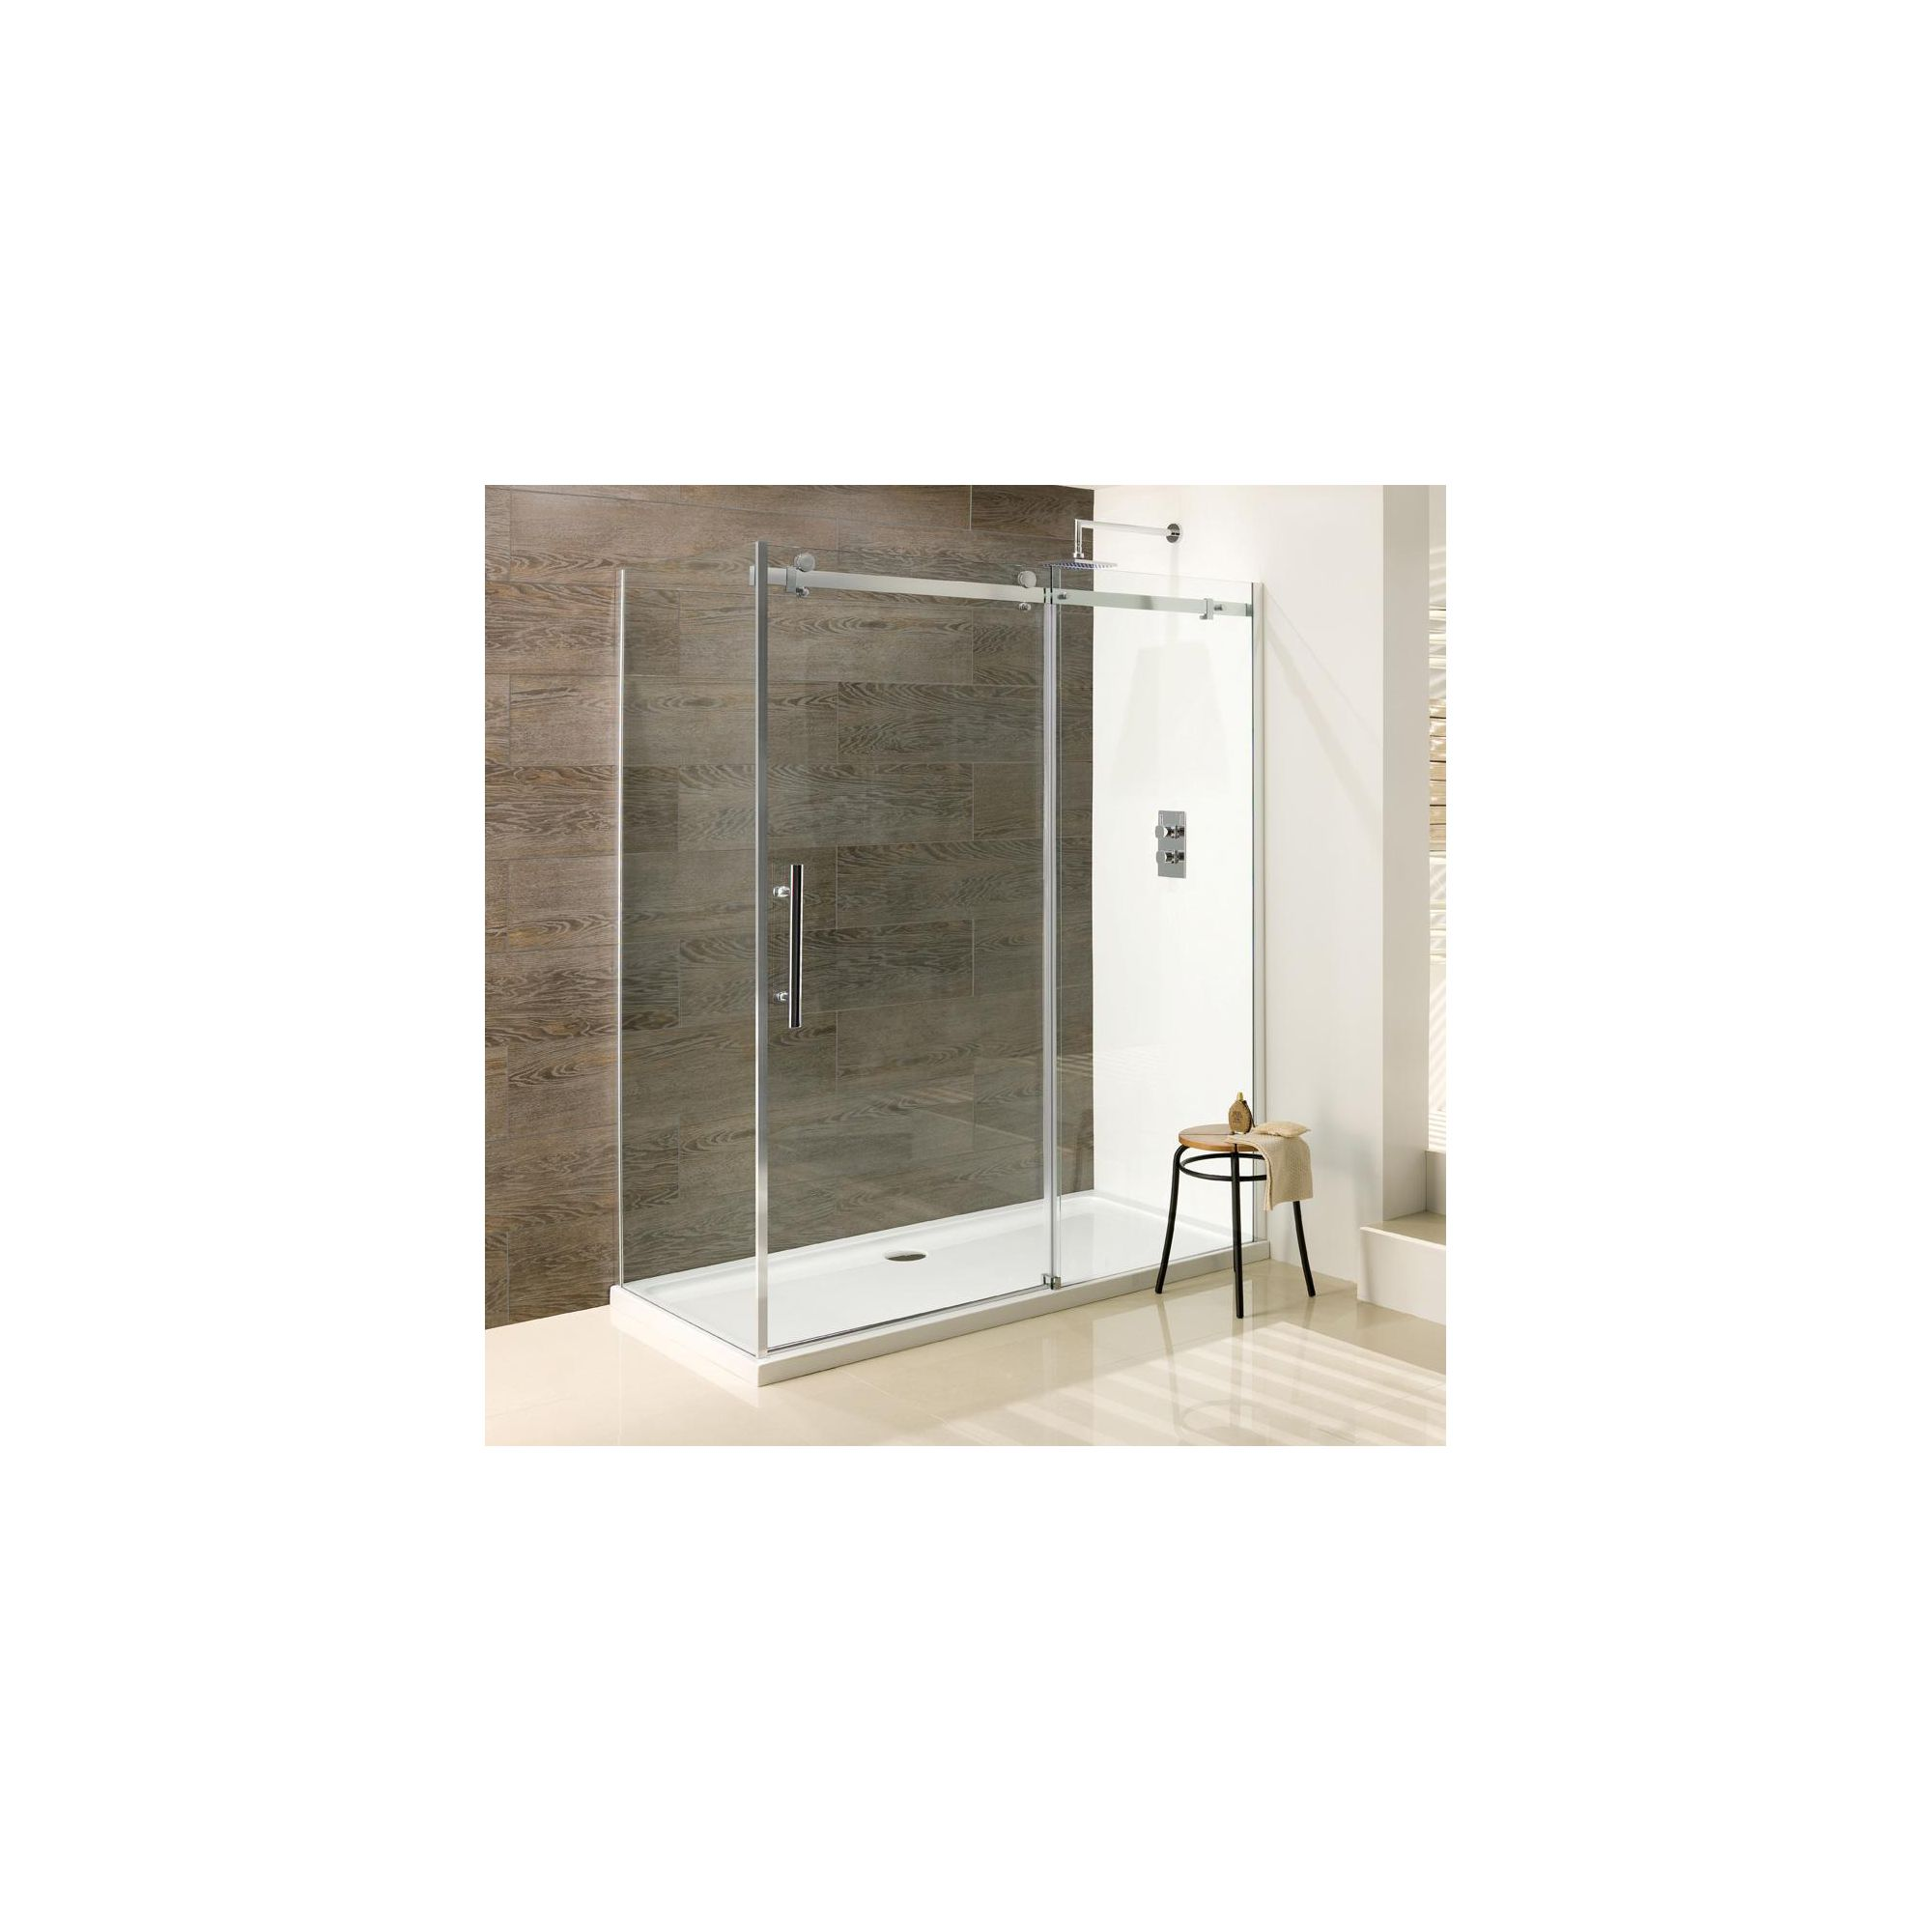 Duchy Deluxe Silver Sliding Door Shower Enclosure with Side Panel 1000mm x 700mm (Complete with Tray), 10mm Glass at Tesco Direct